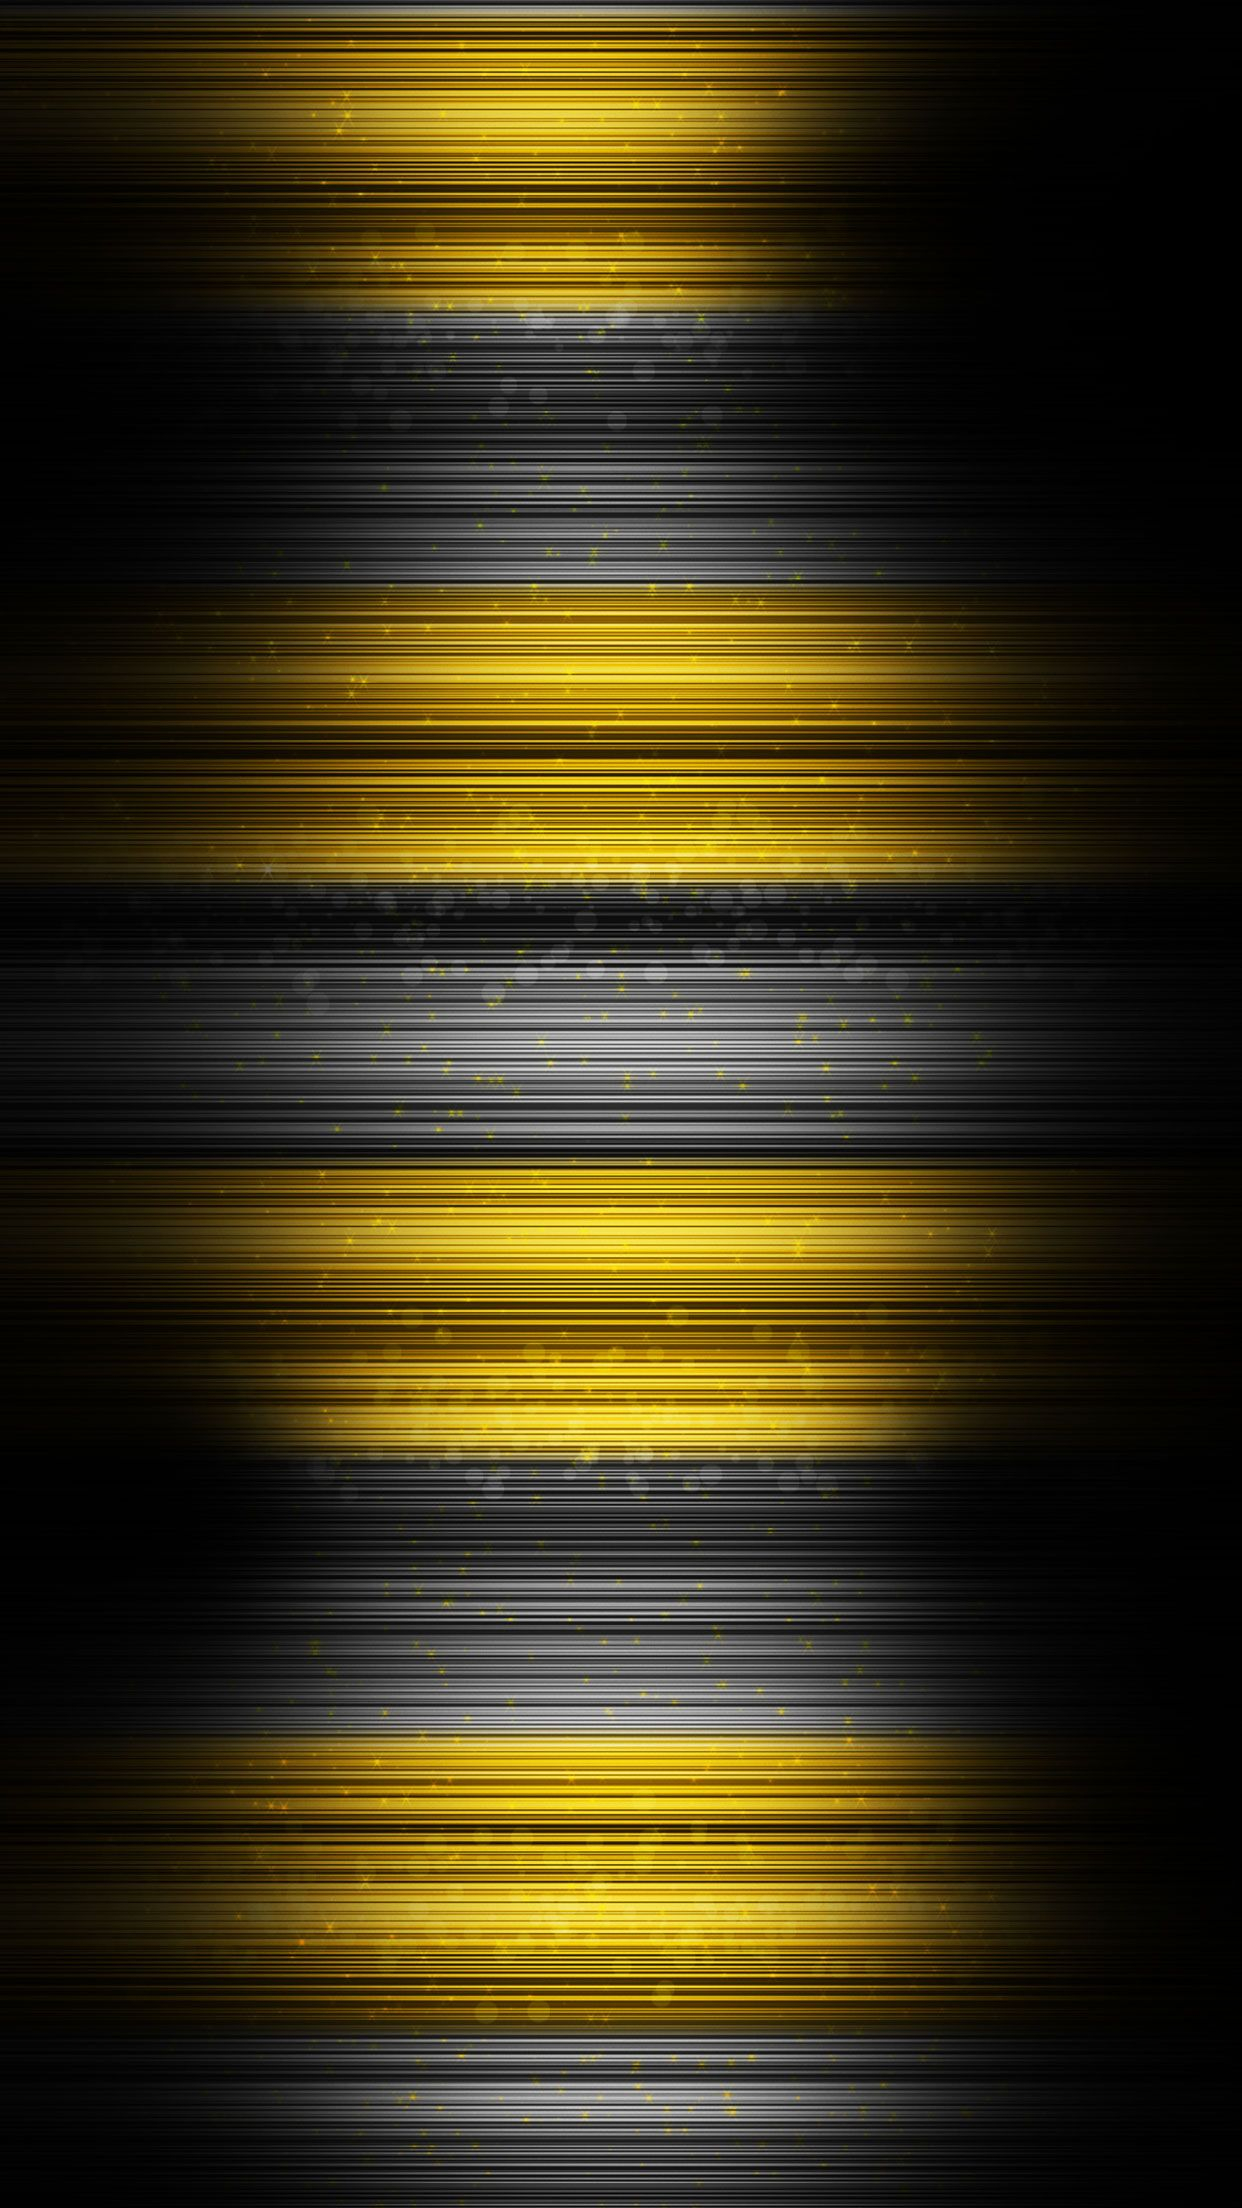 Yellow and black abstract wallpaper for Iphone and